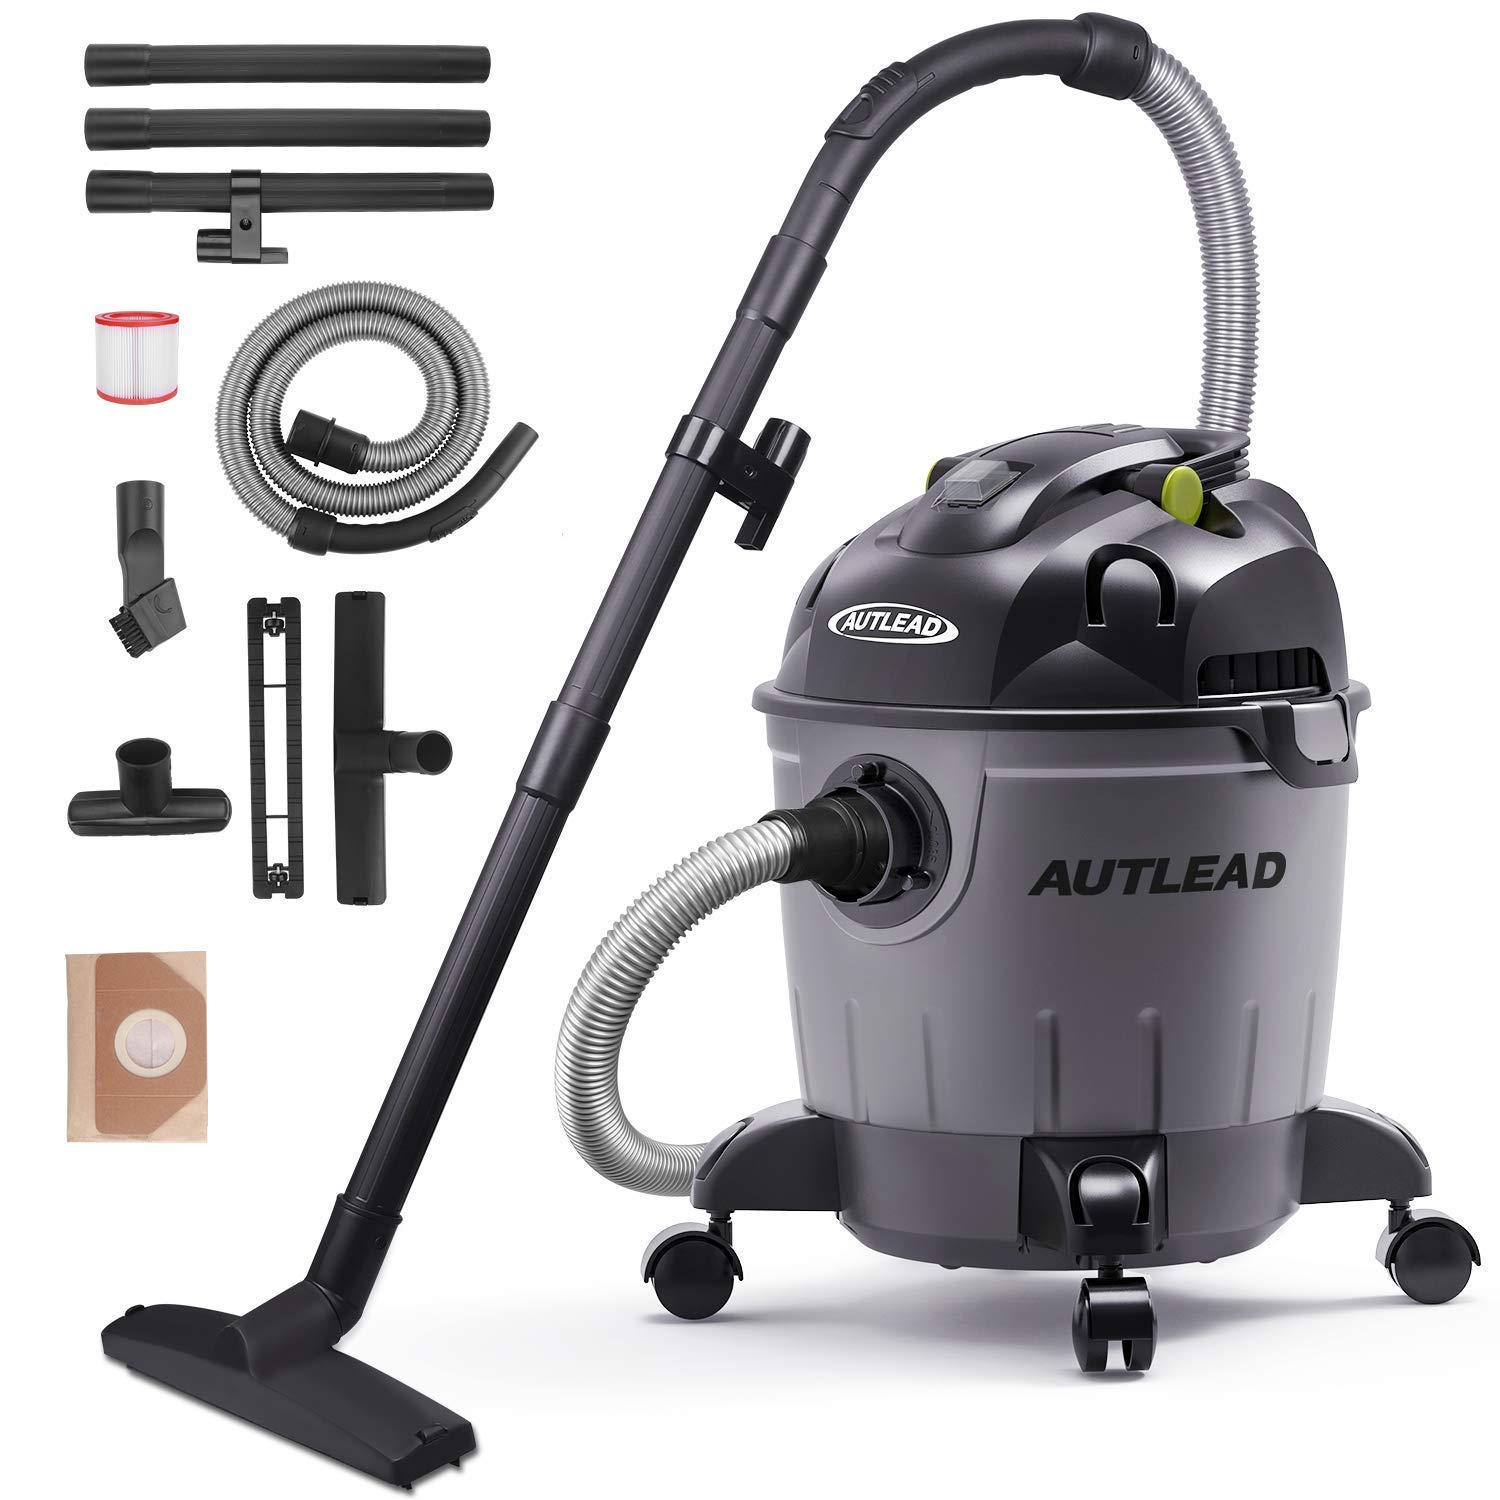 AUTLEAD Wet Dry Vacuum WDS01A 5 Gallon Pure Copper Motor 5.5 HP Wet/Dry/Blow 3 in 1 Shop Vac, Stable Round Bucket Design with Pulley System, HEPA Disposable Bag, 3 Brush Included[US Stock] by AUTLEAD (Image #9)